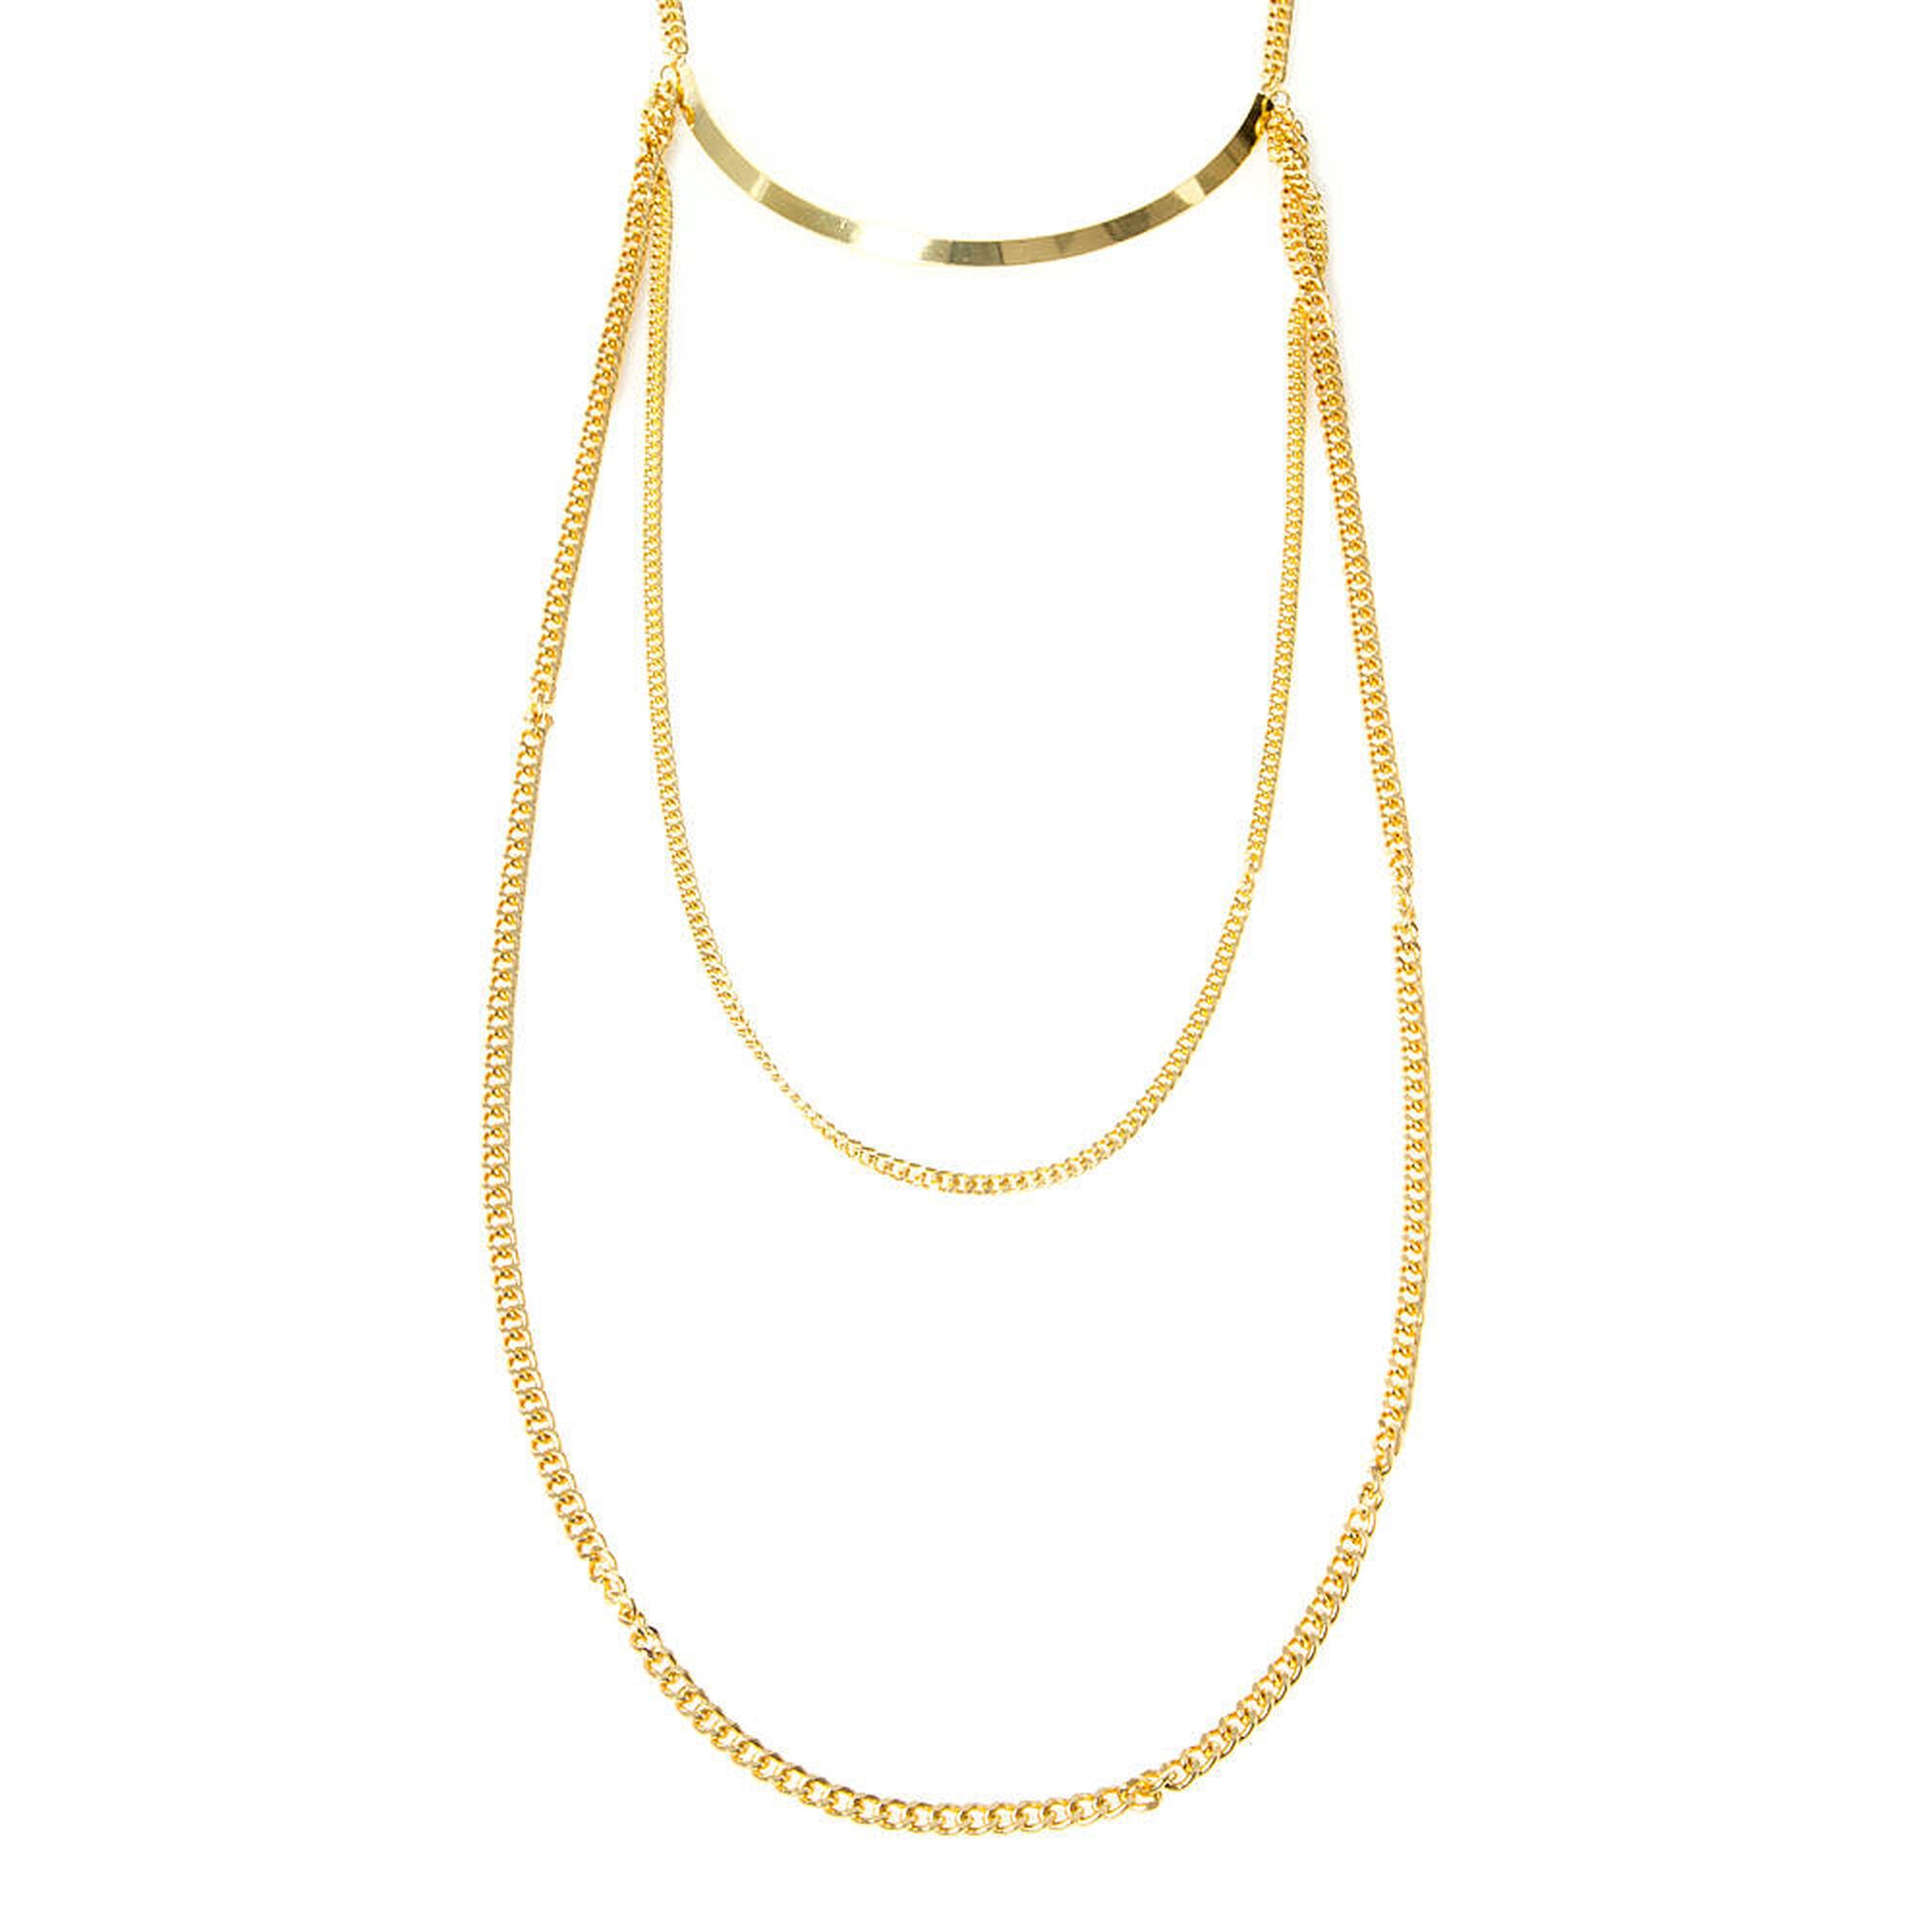 Unique Gold Collar and Chains Multi-Strand Necklace | Claire's US YK99